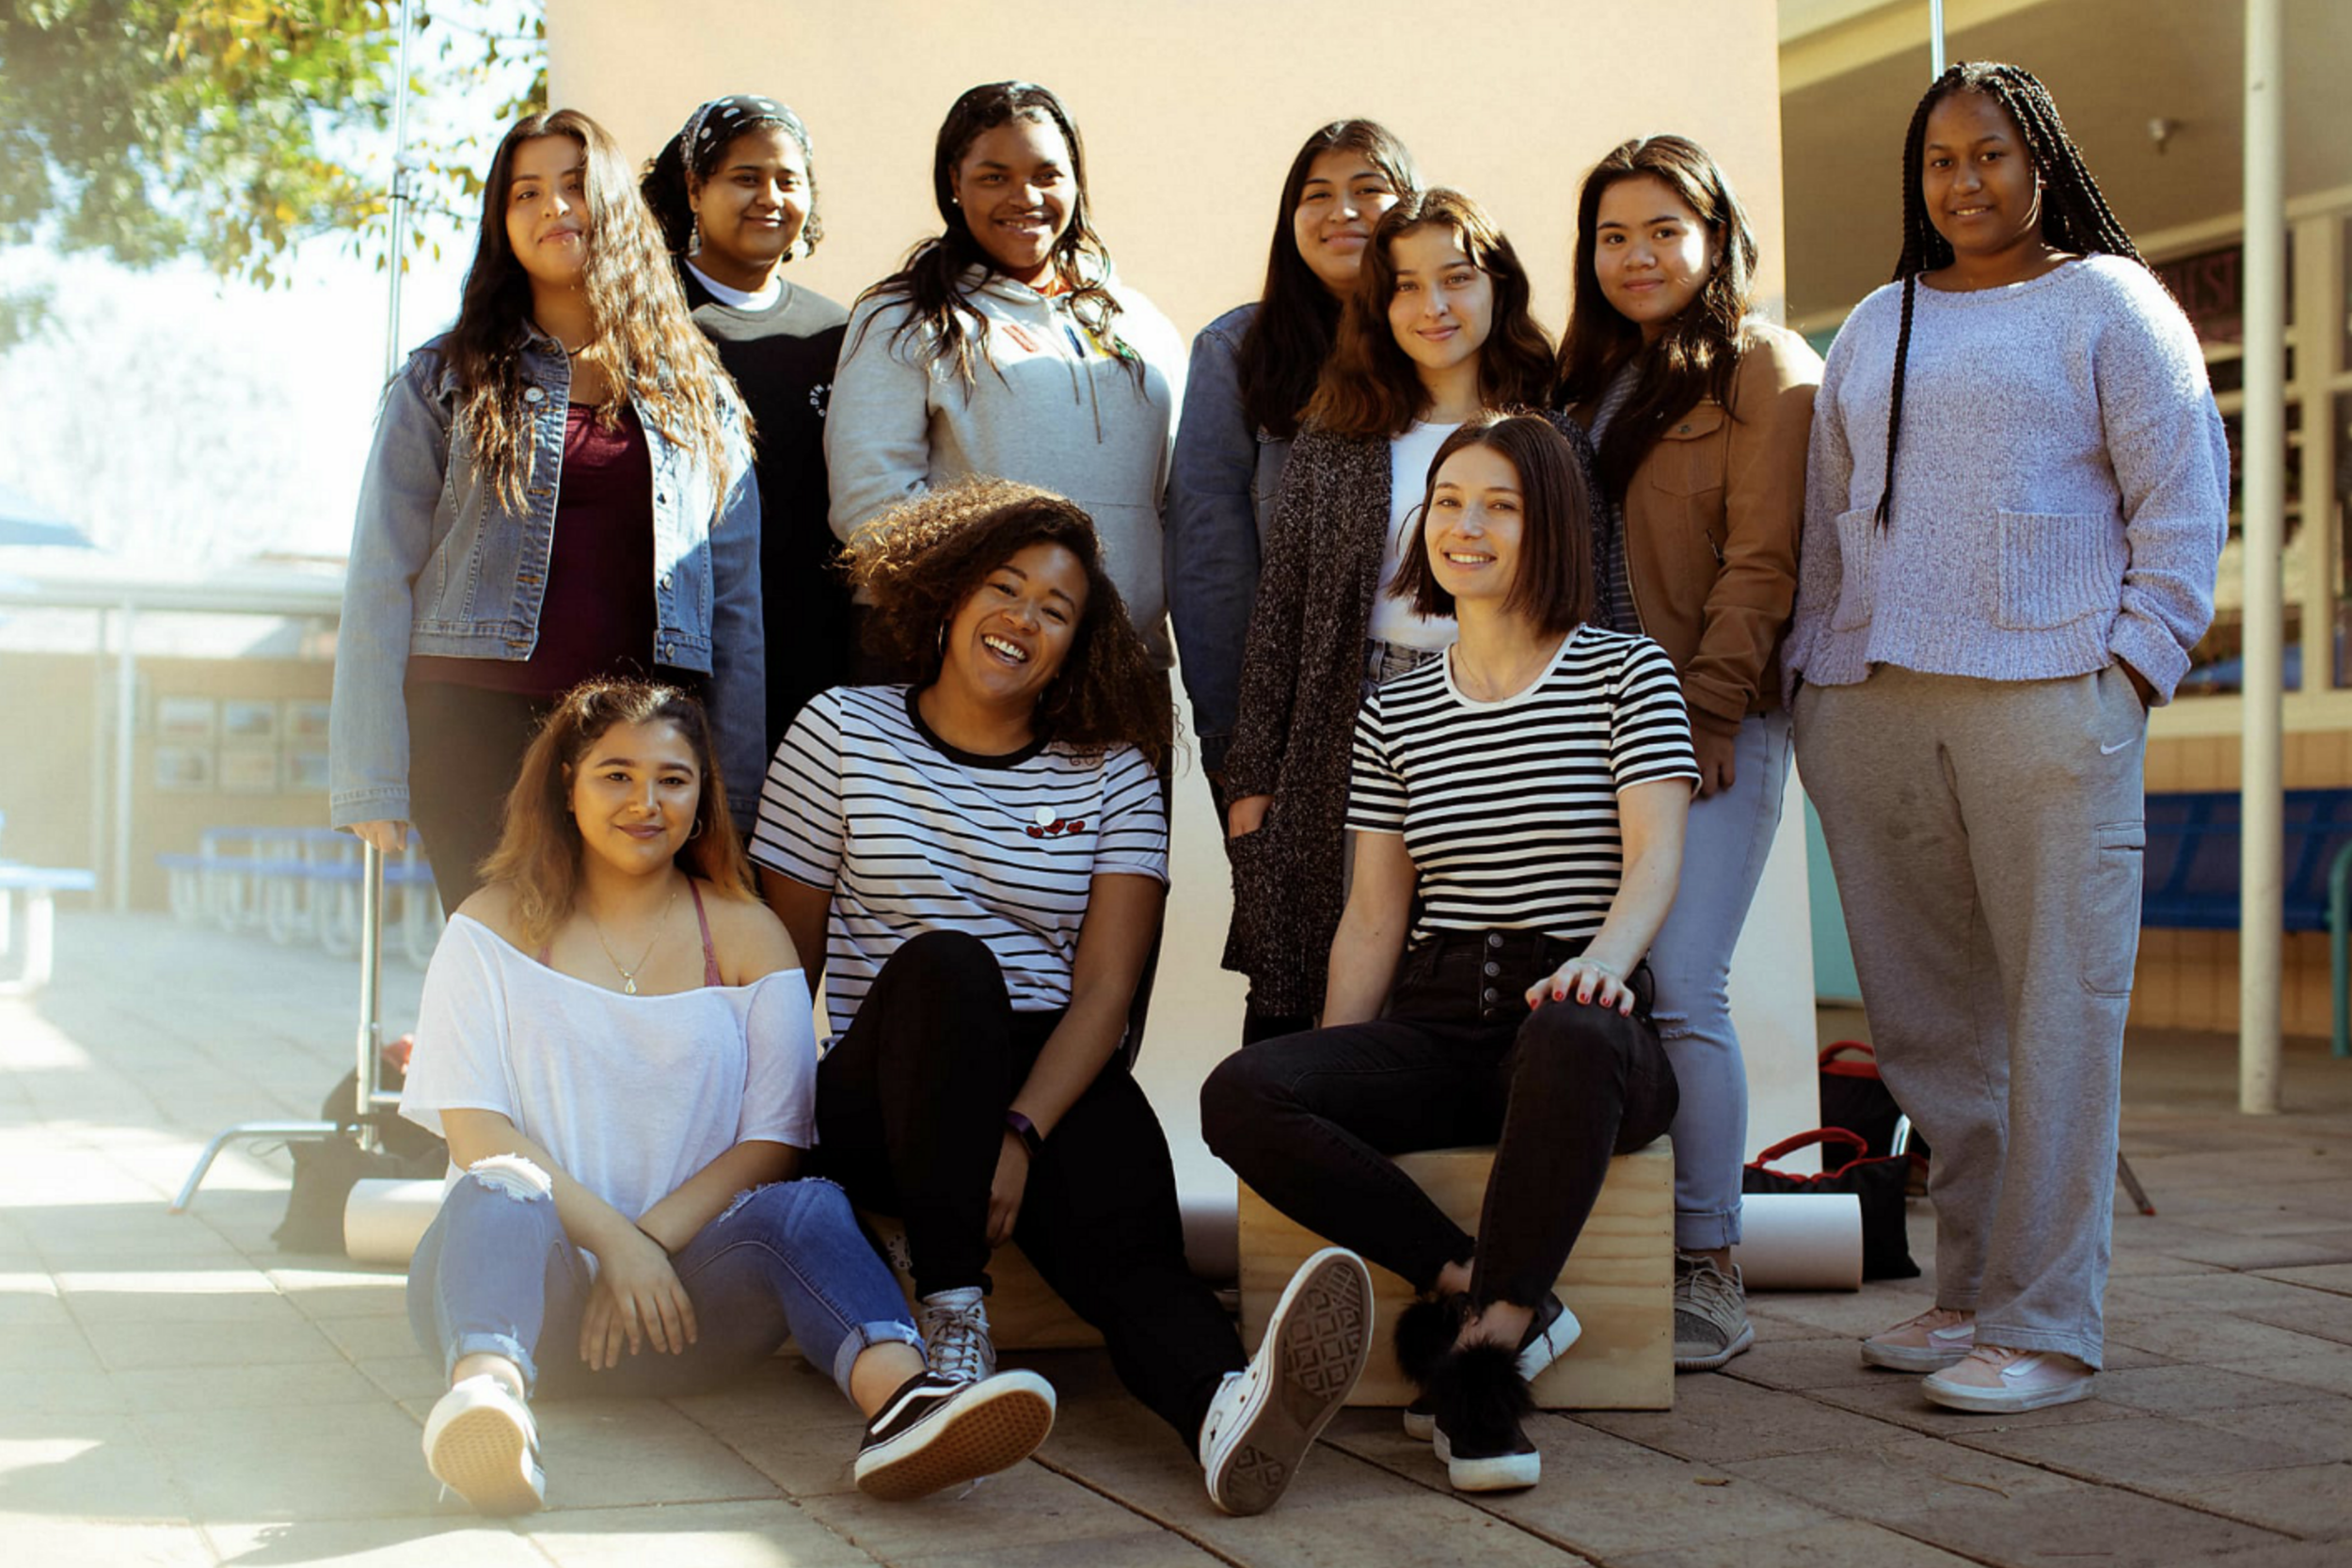 Our Mentors from Oui Productions, who work with the girls to teach Photo Production and on set guidelines.